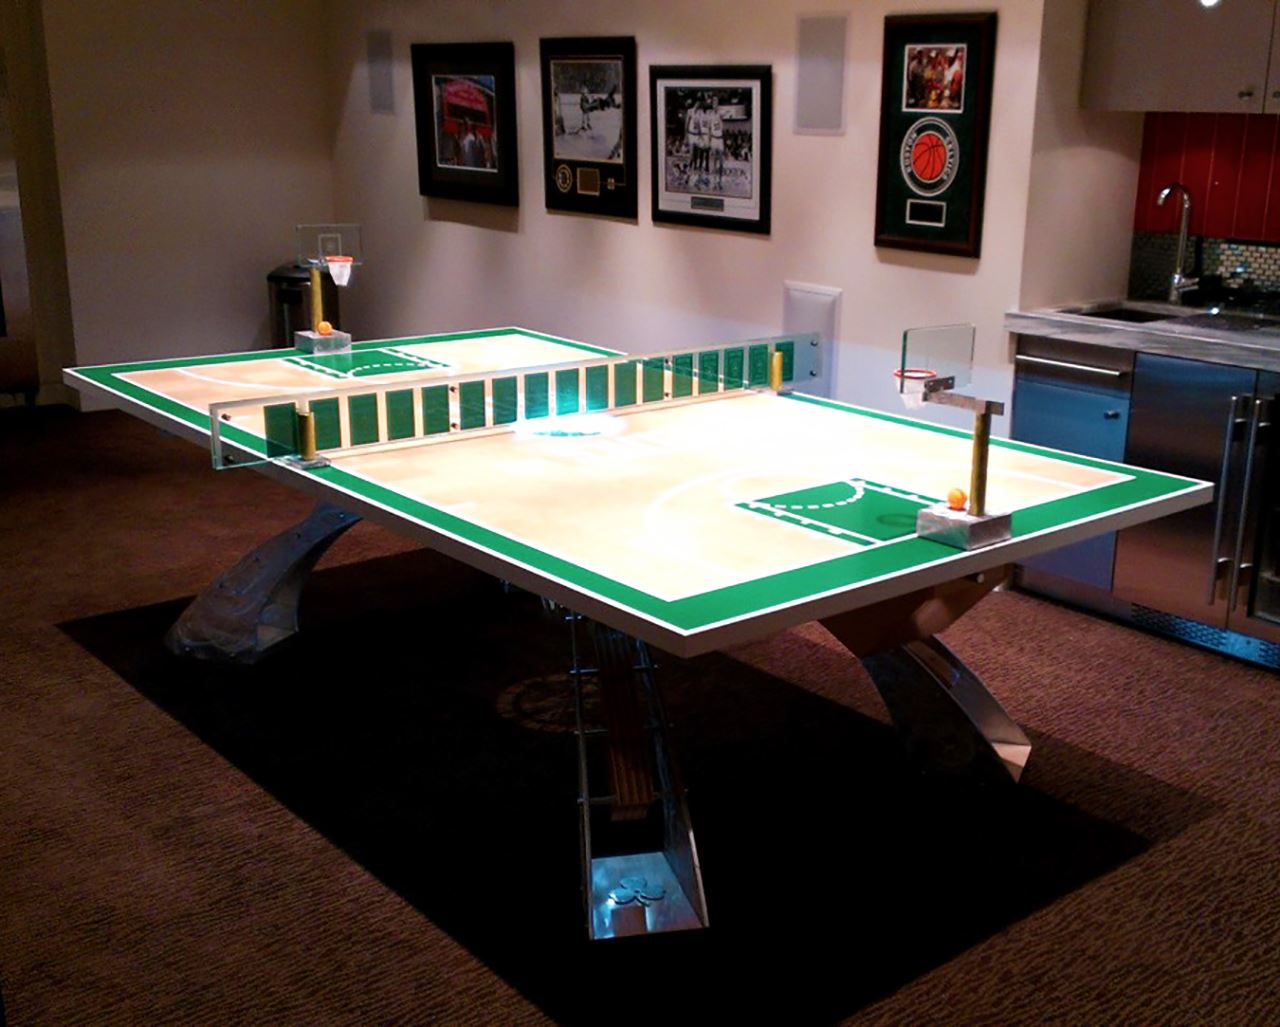 Table spoon conference table michigan state university table - Table Spoon Conference Table Michigan State University Table Hurricane Billiards Conference Table Download